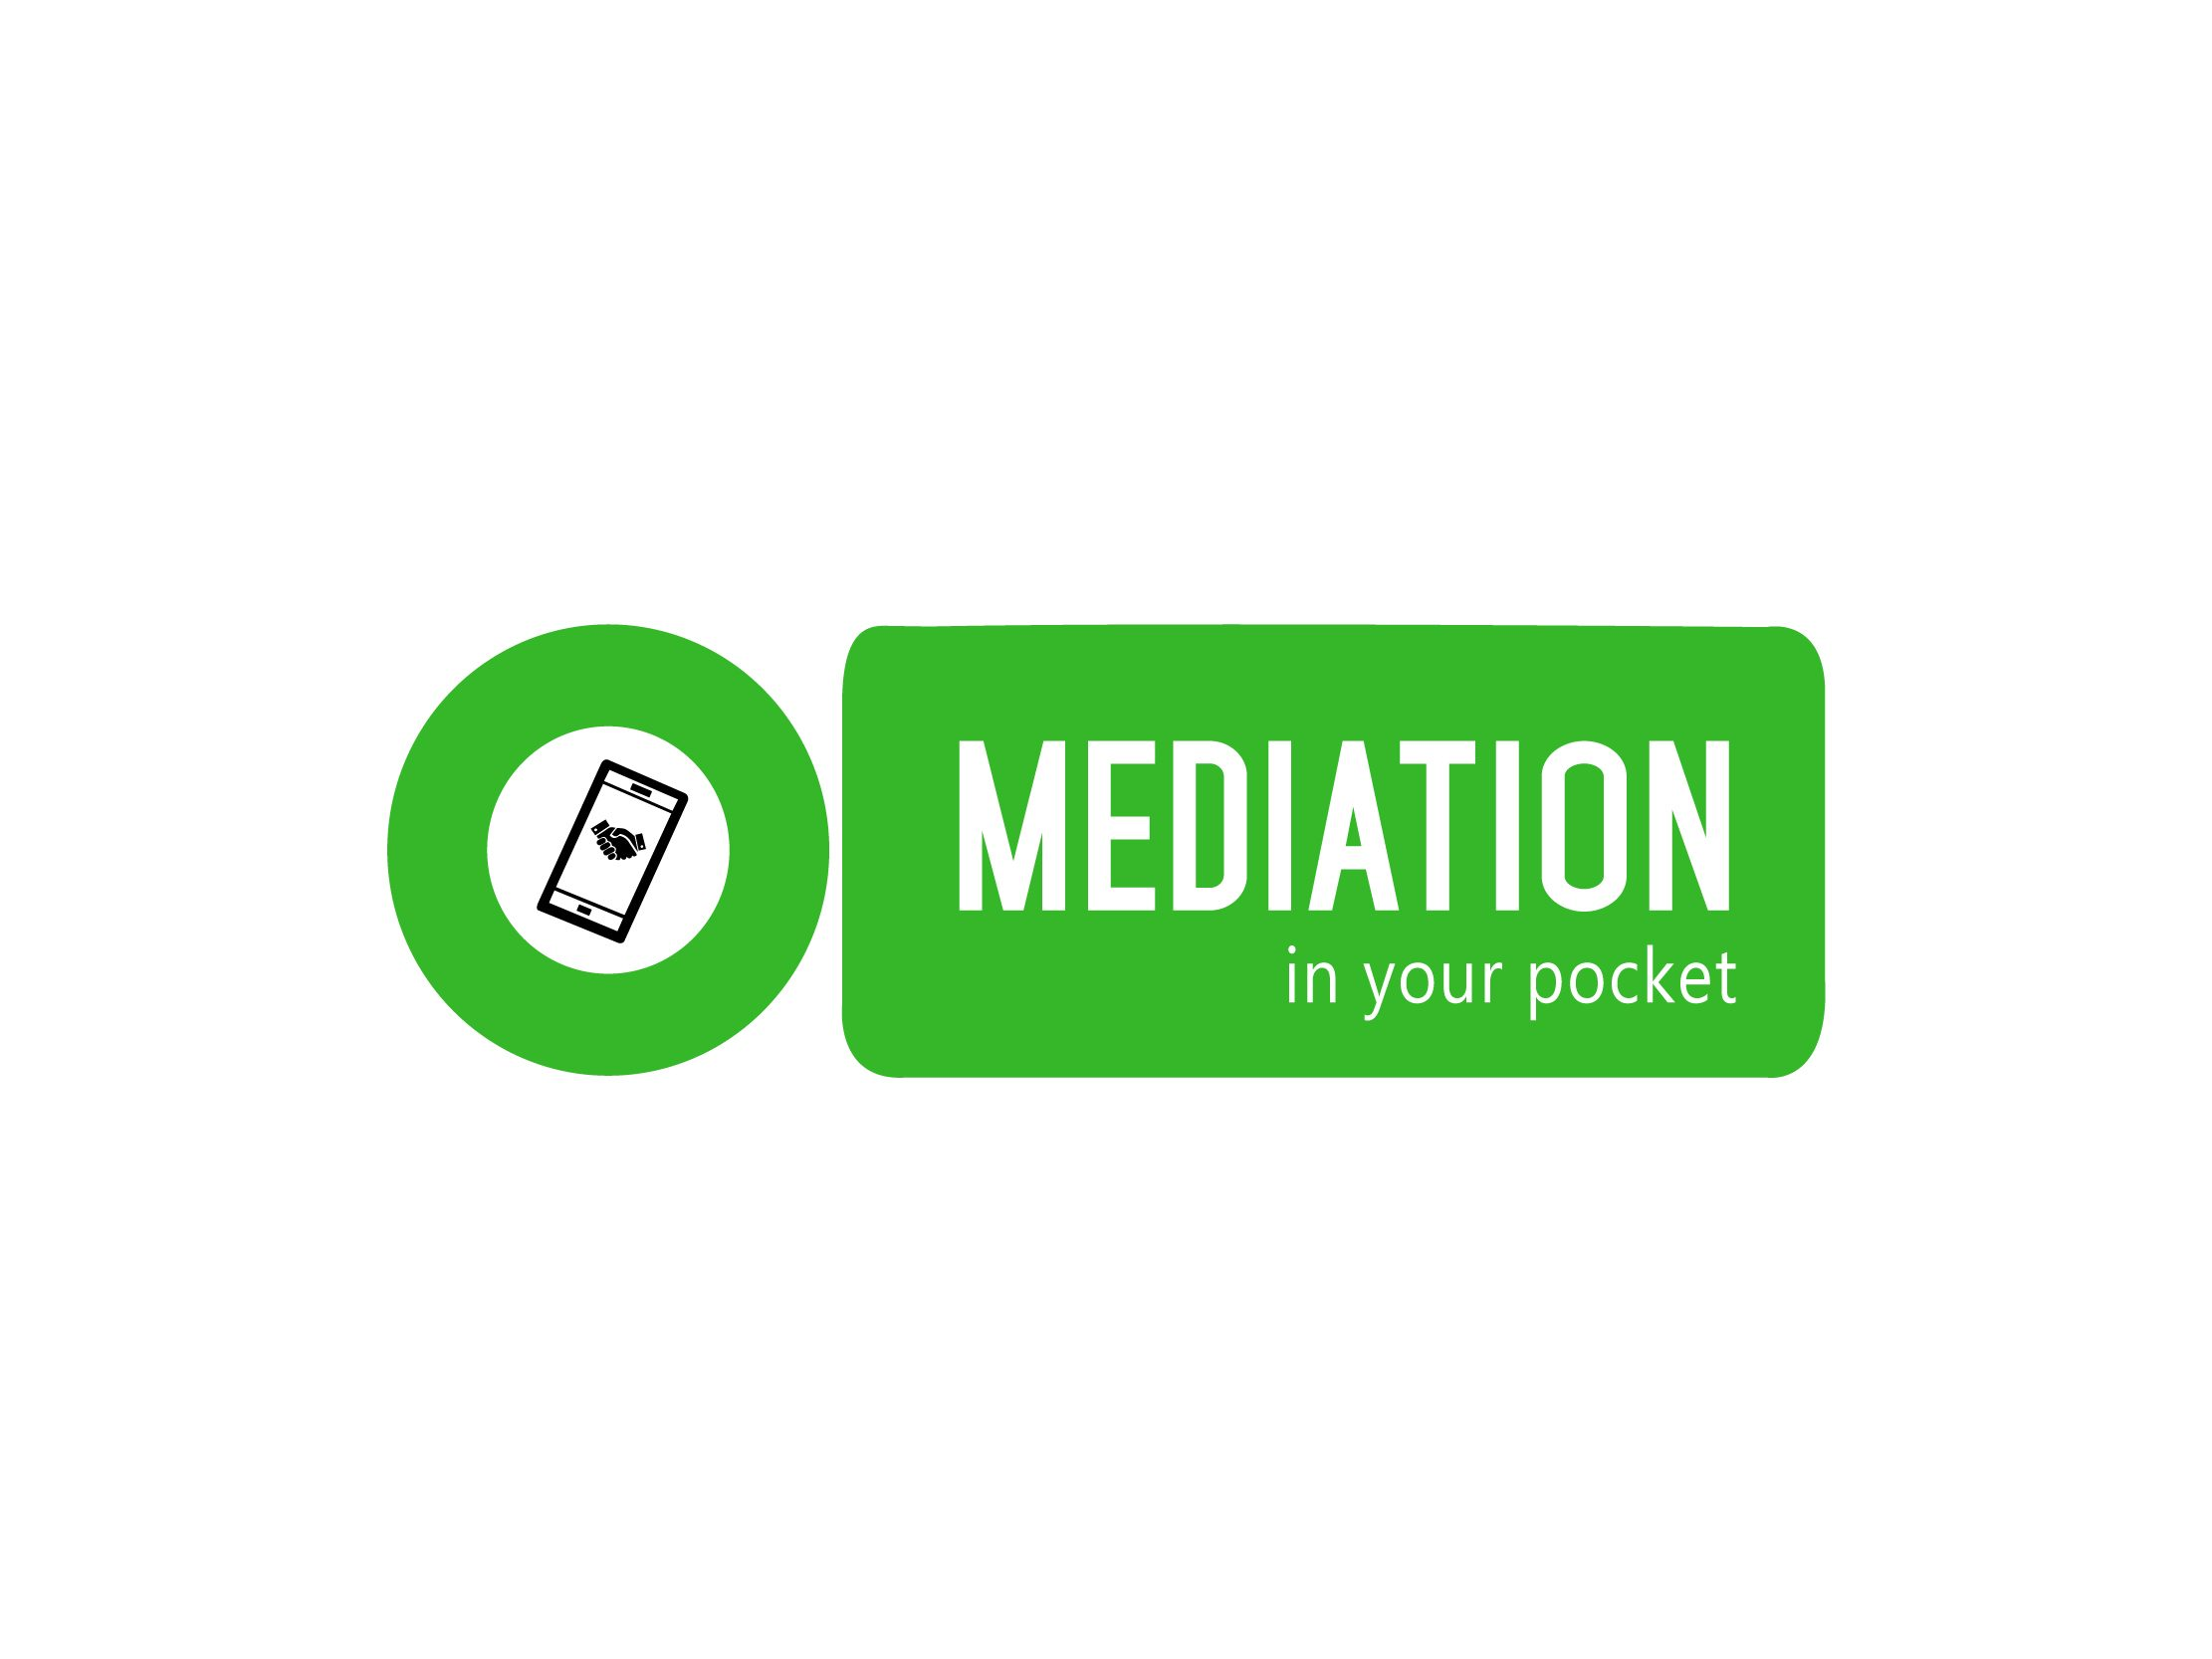 mediation in your pocket